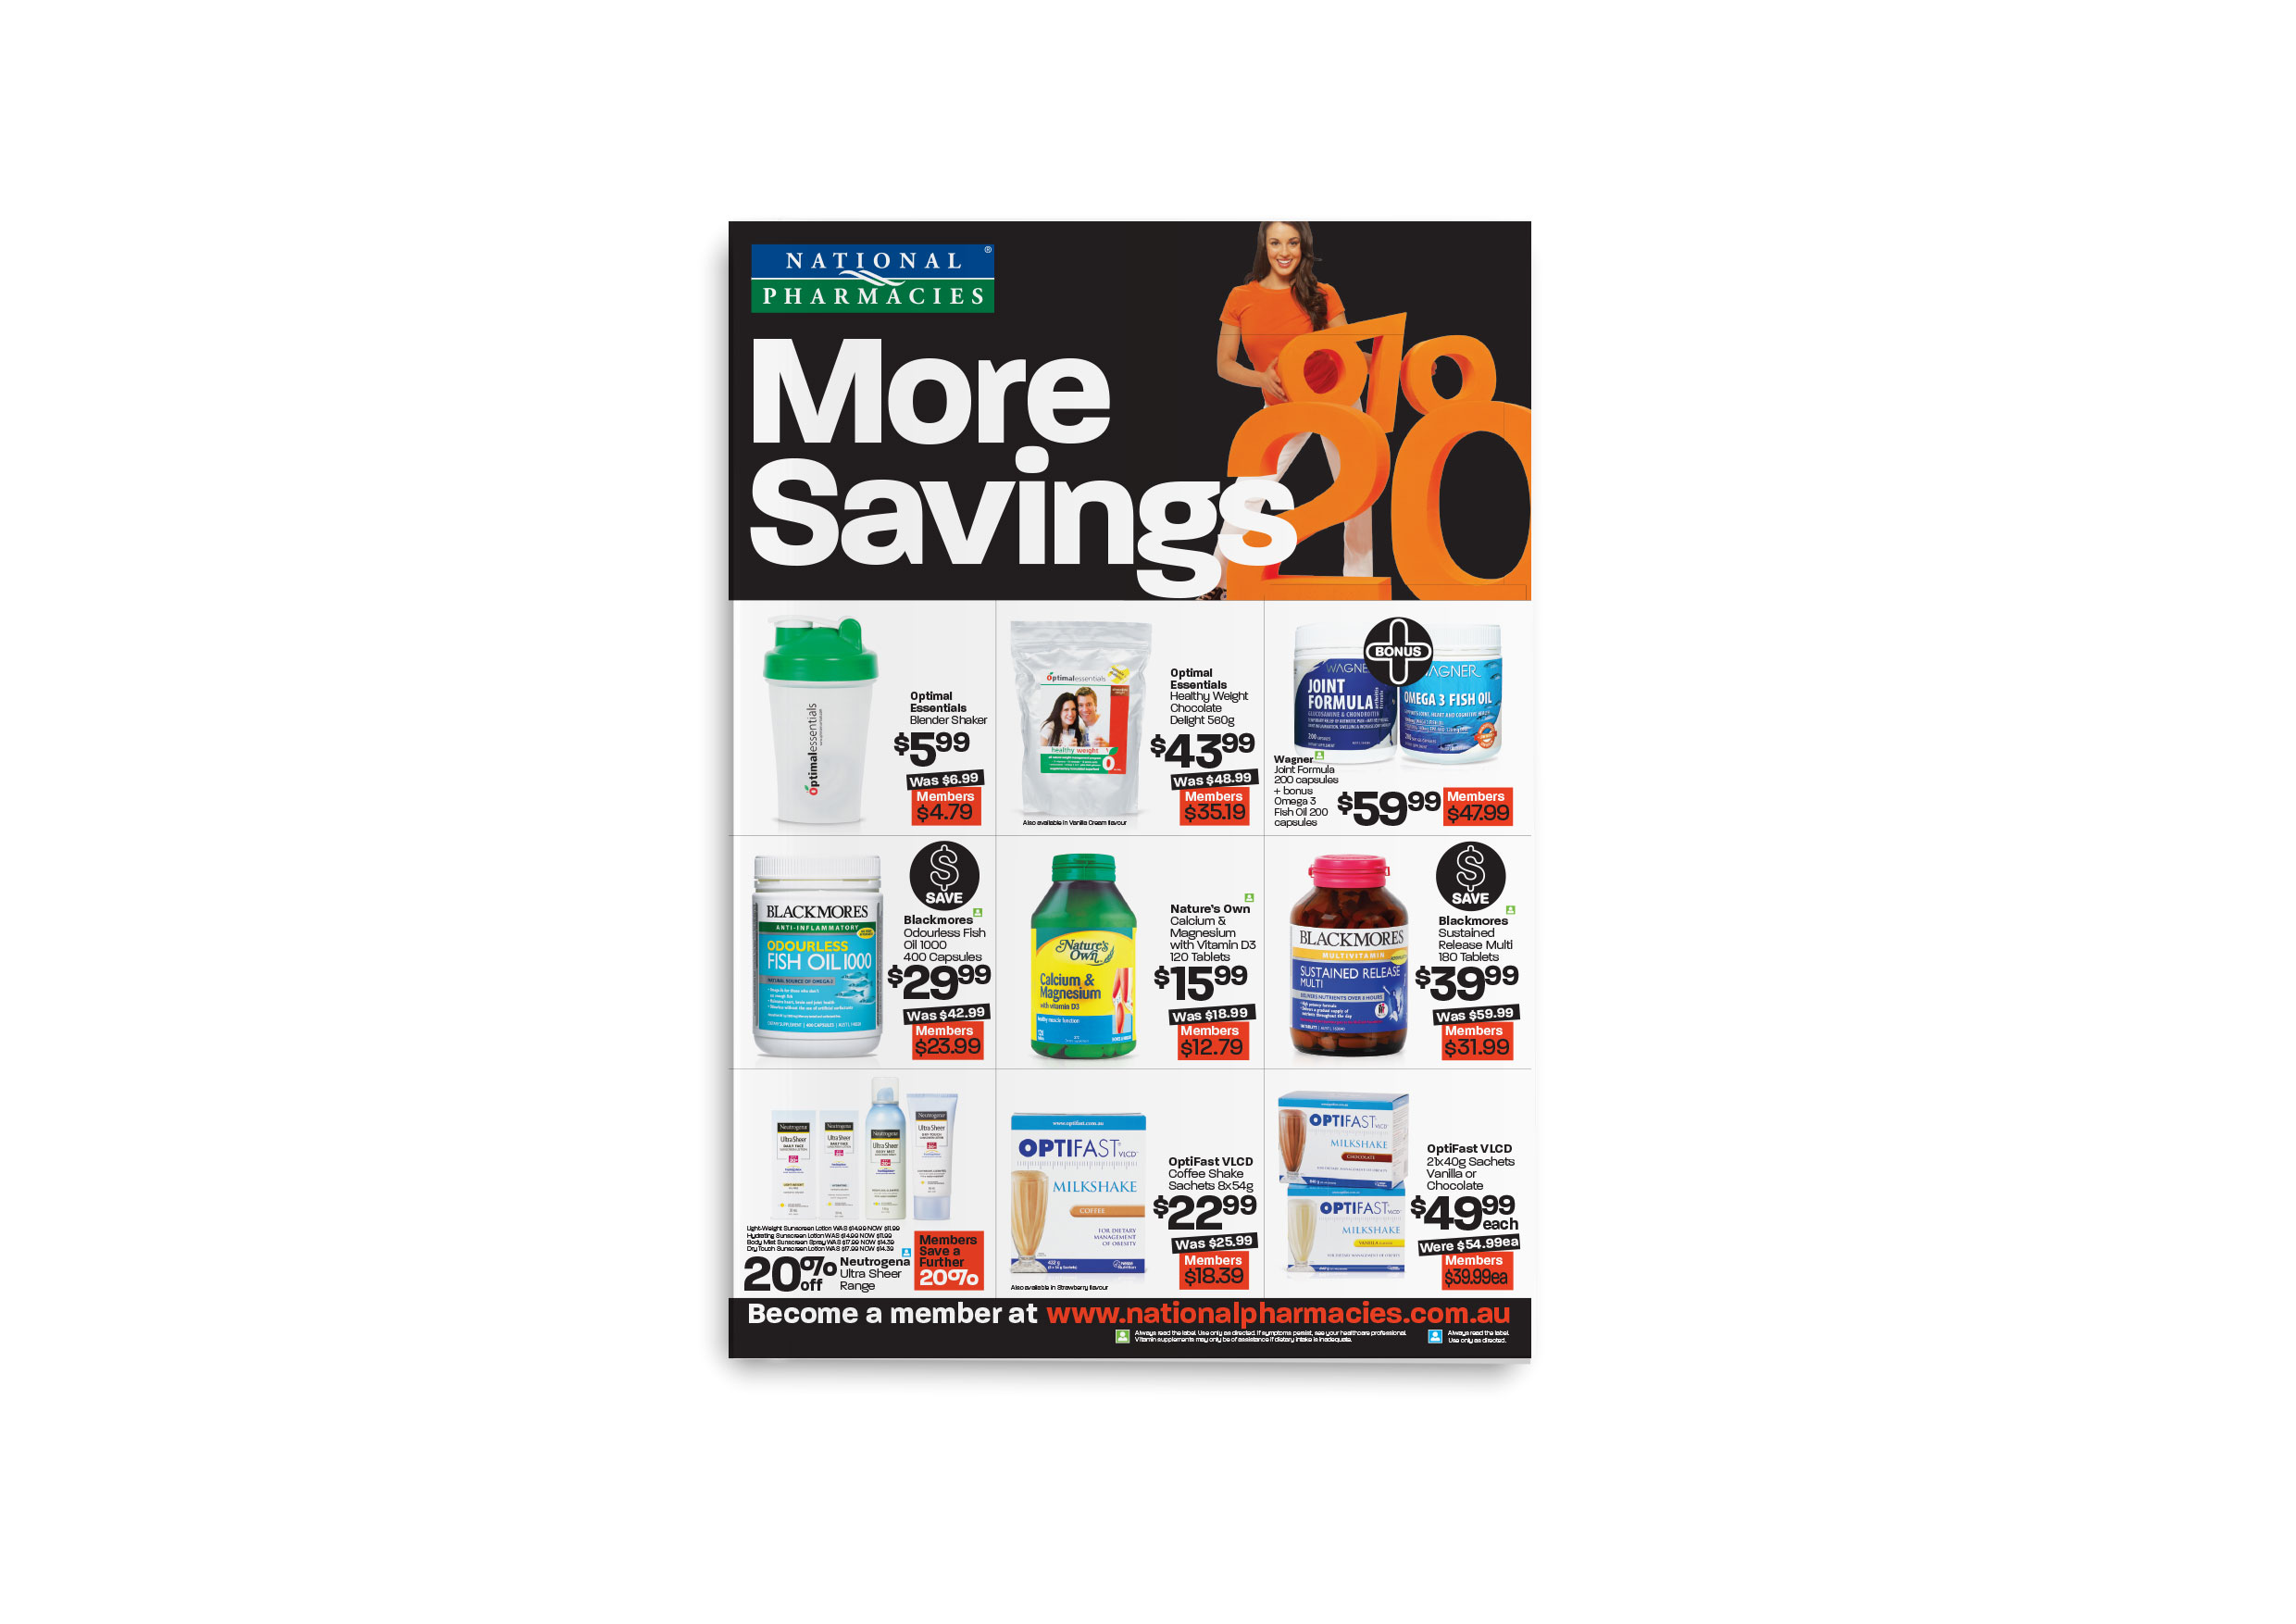 MORE-SAVINGS_9